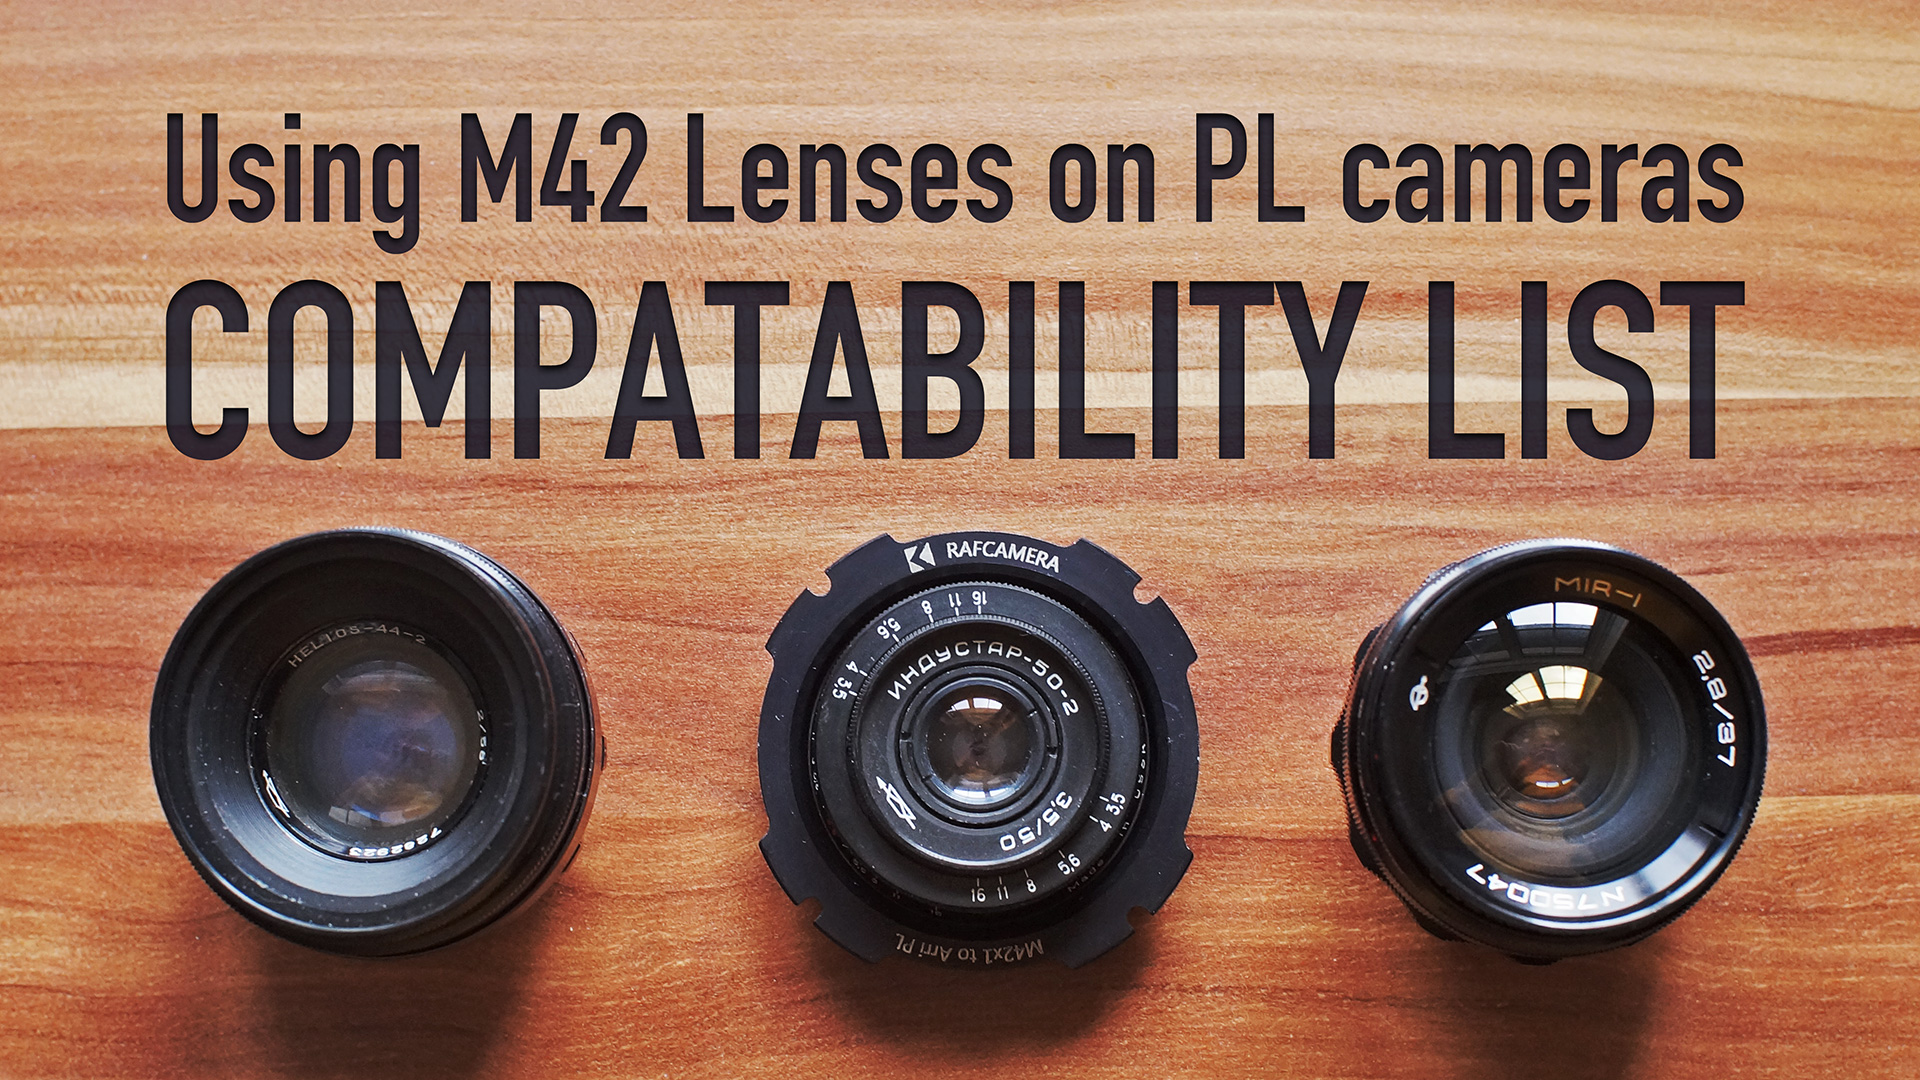 Using M42 lenses on PL cameras | Comparability List